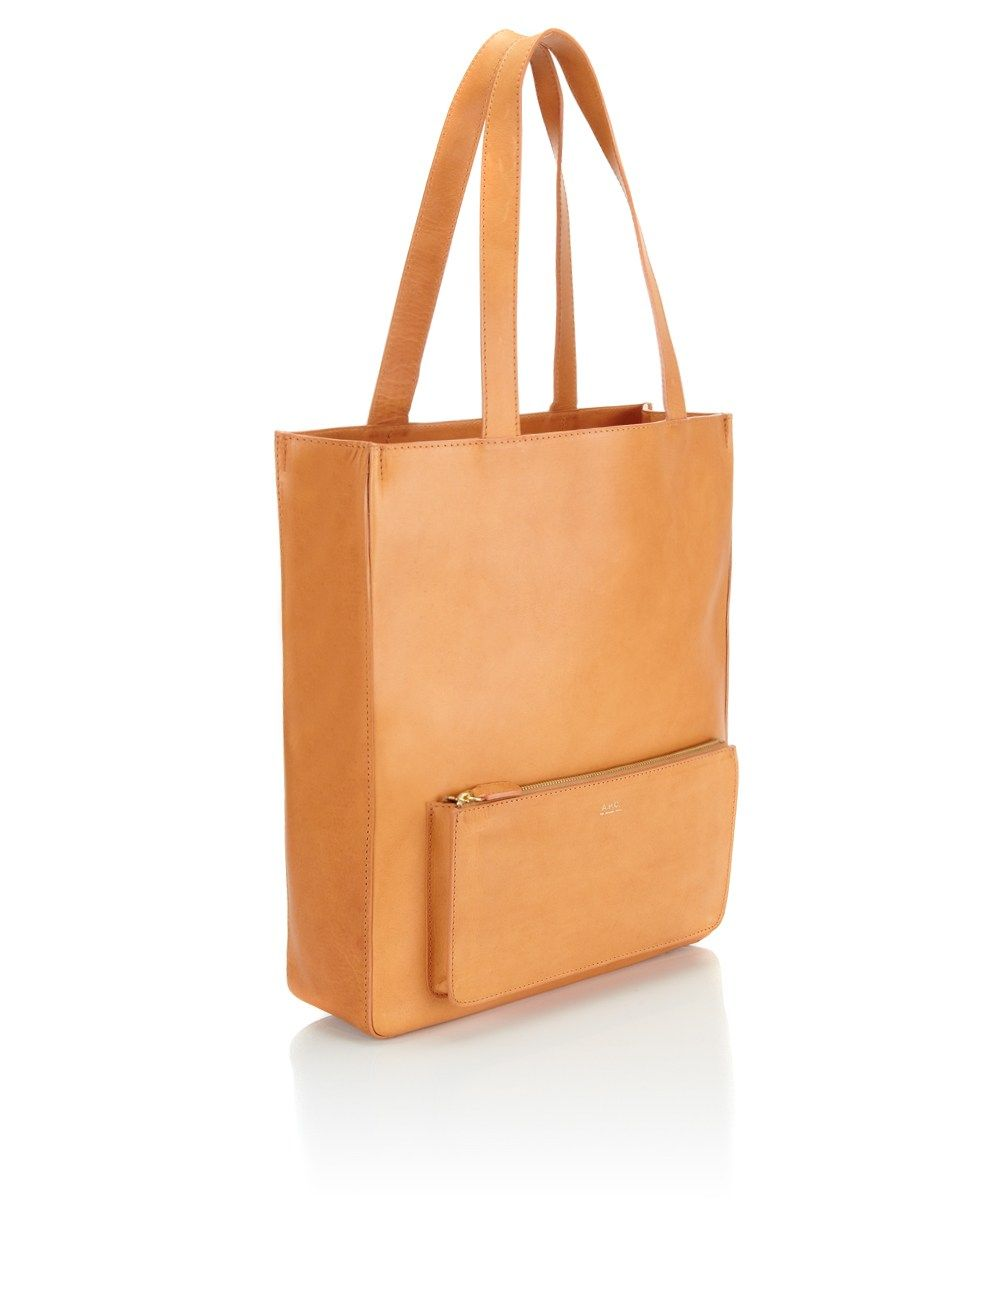 Natural Leather Tote Bag A P C